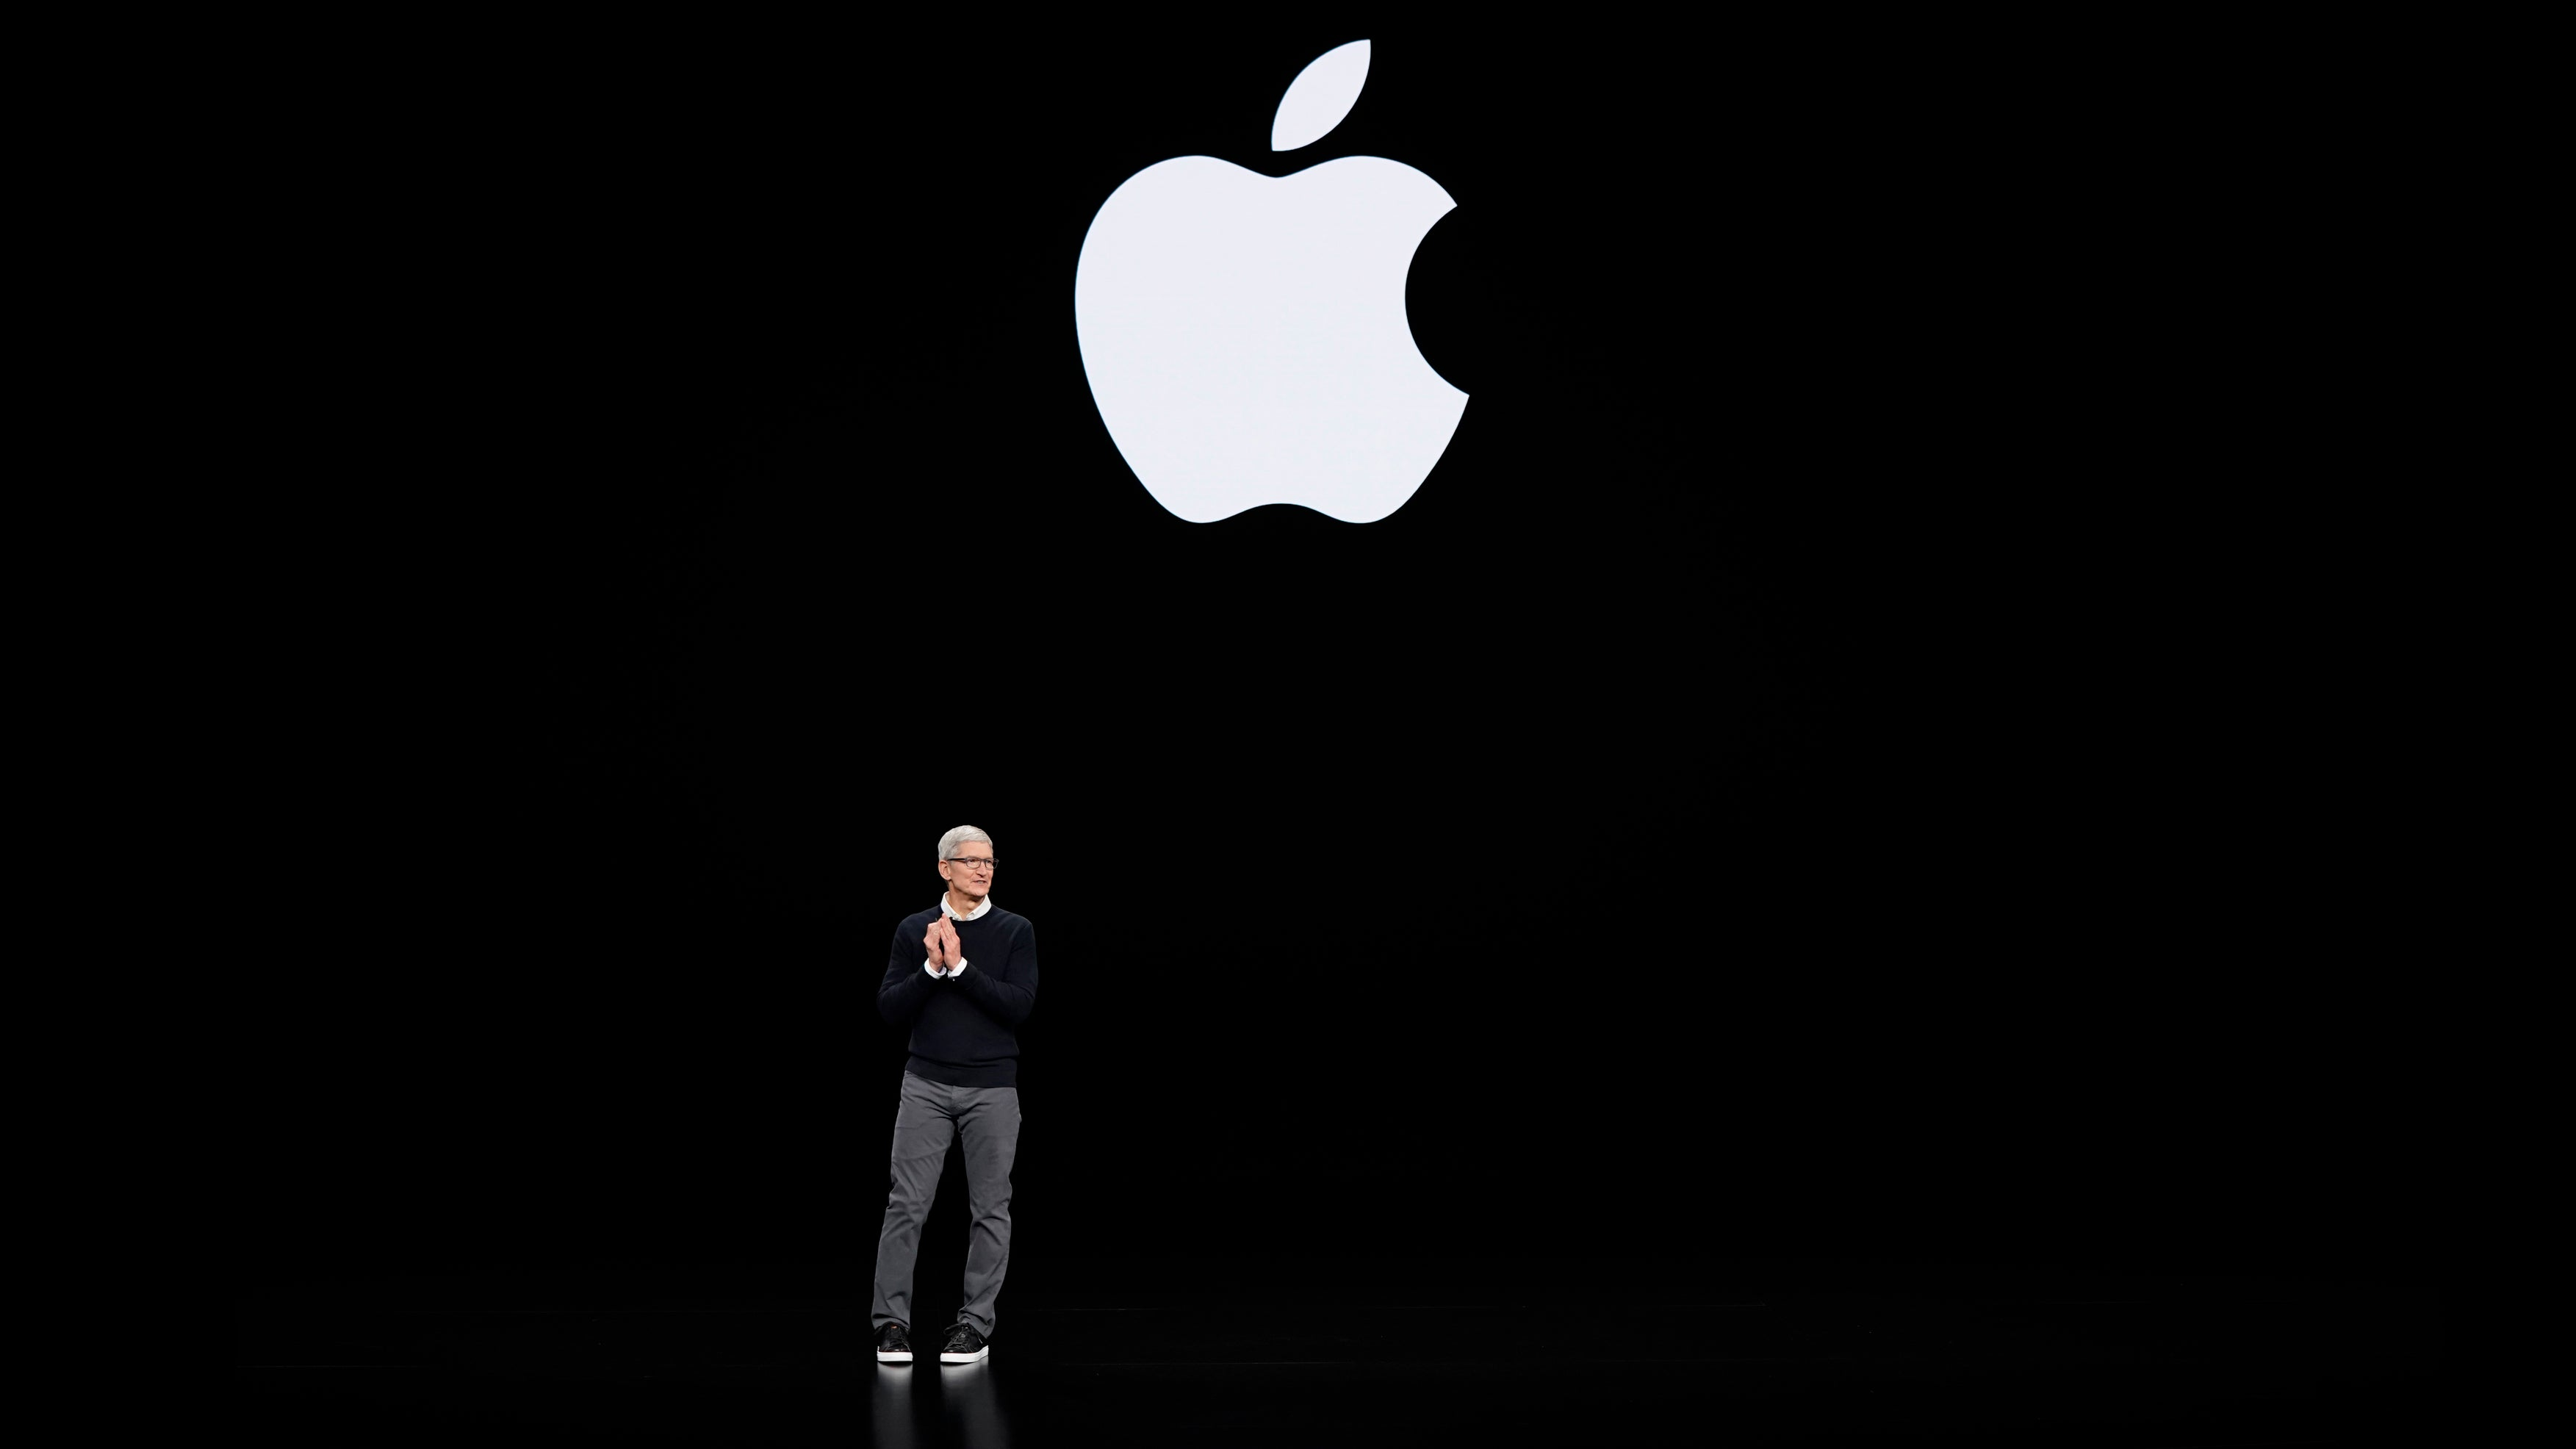 apple apple-arcade apple-card apple-news apple-news-plus apple-pay apple-services-event apple-tv apple-tv-plus